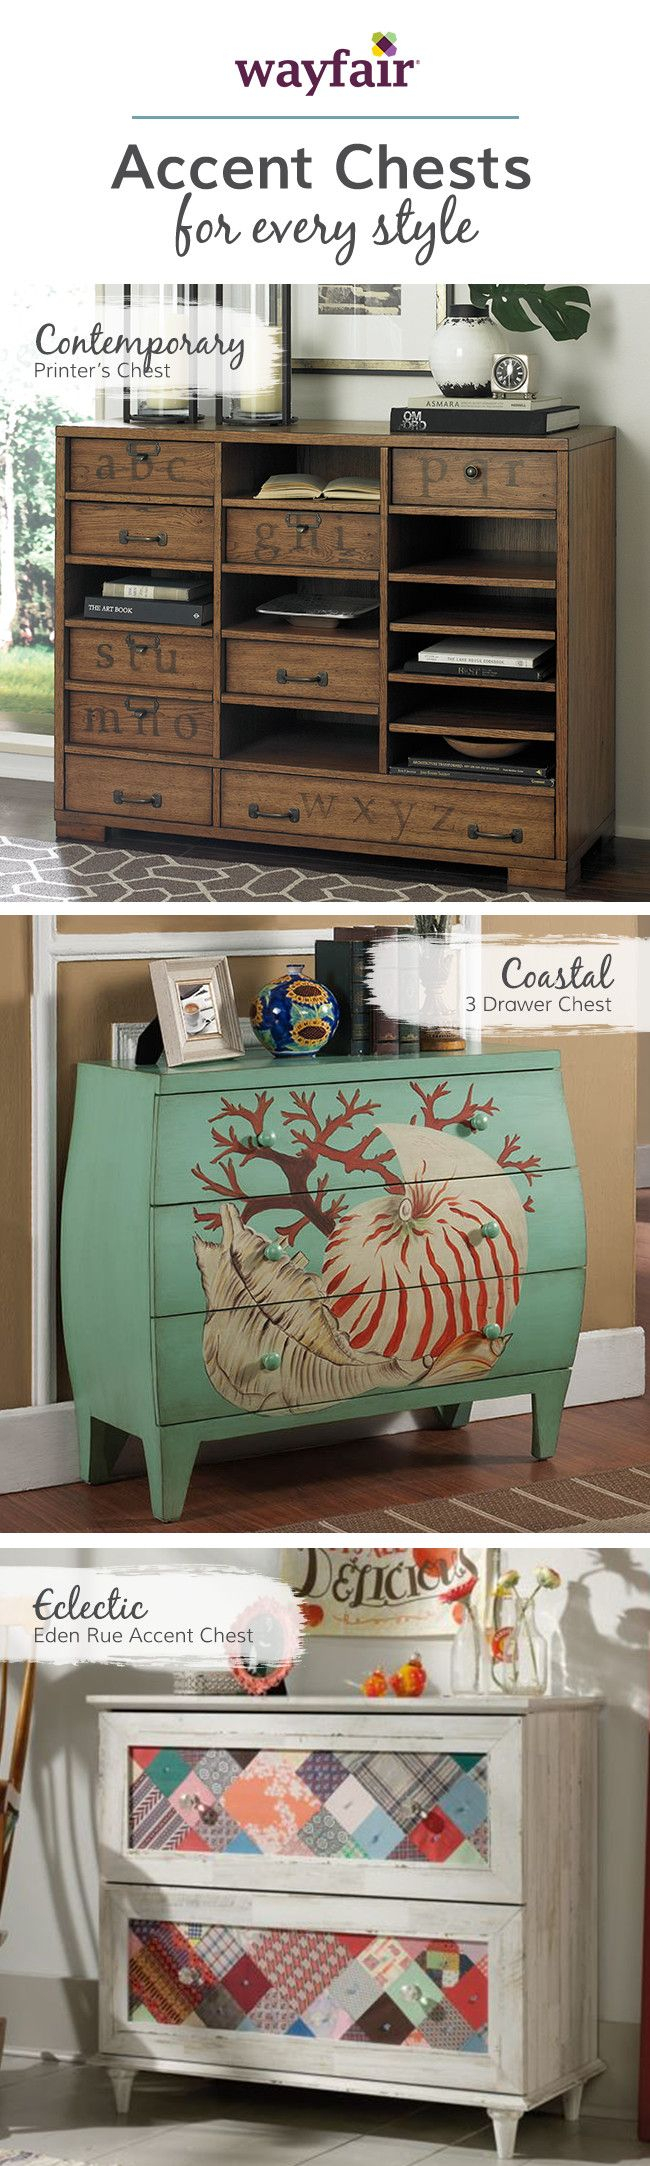 99 Best Things With Drawers Images On Pinterest | Drawers, Chest Of with Jacen 78 Inch Tv Stands (Image 11 of 30)